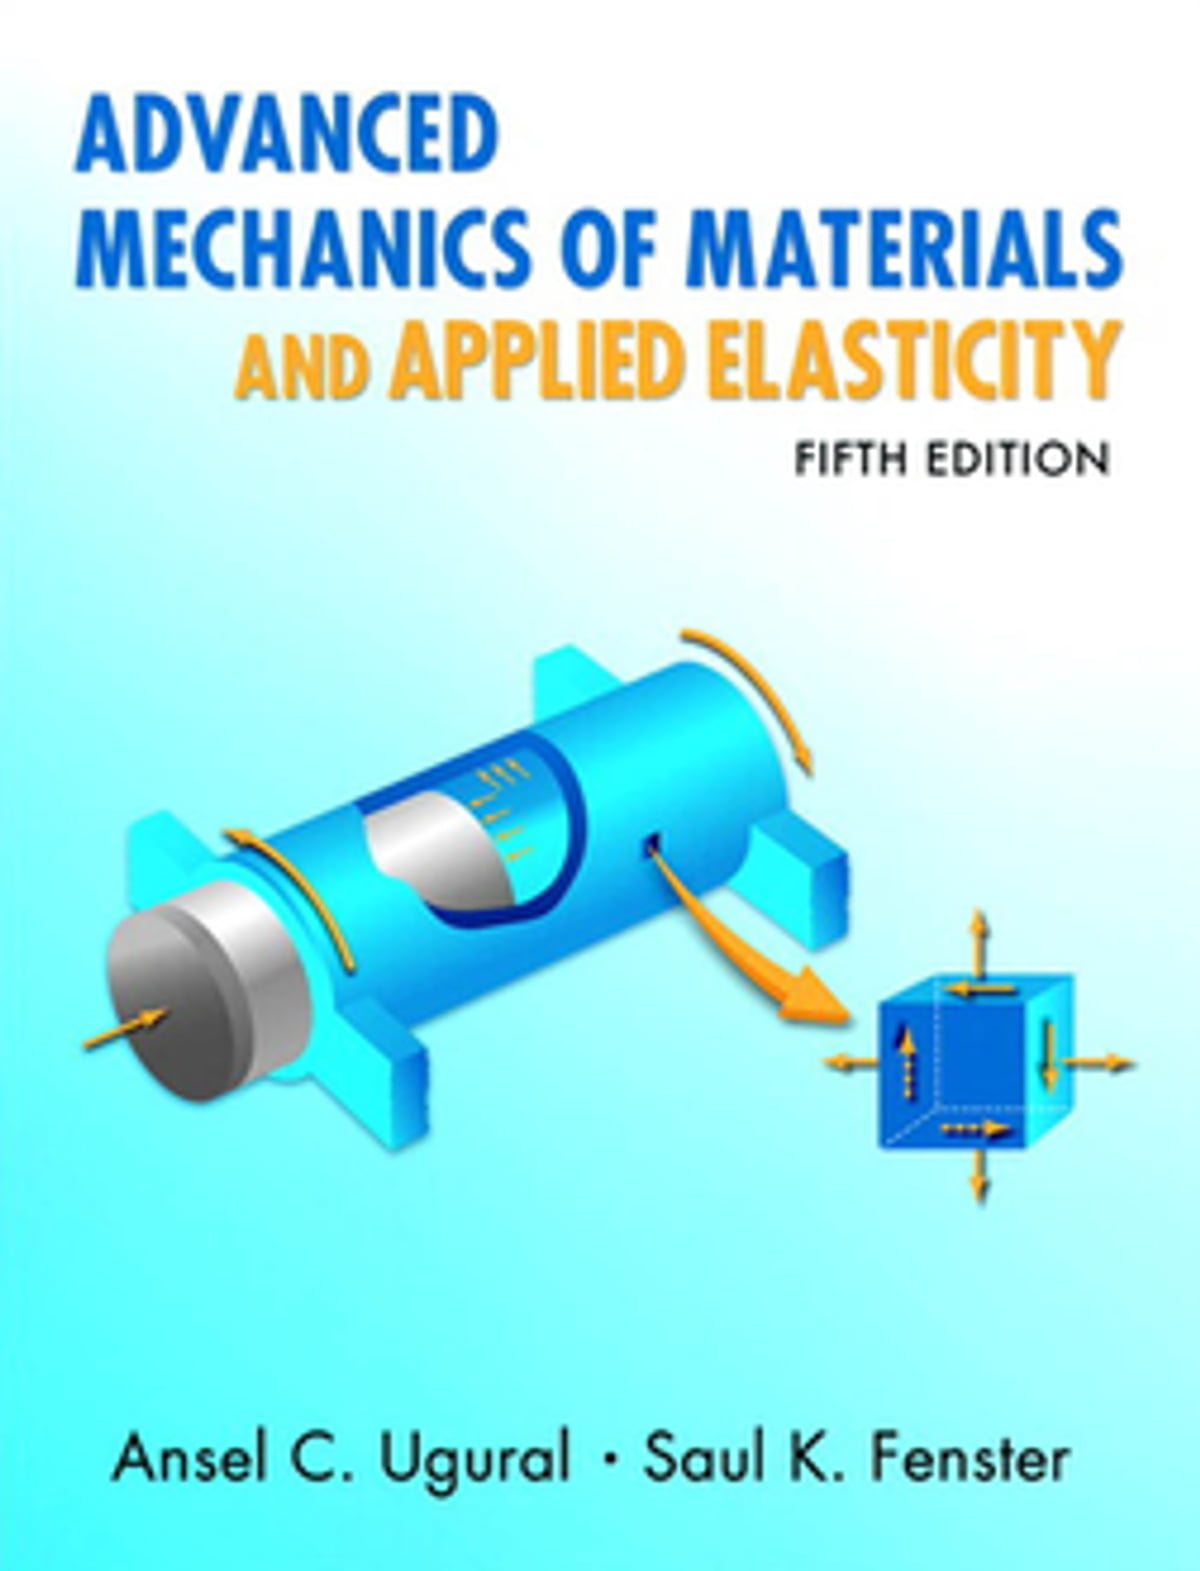 Advanced Mechanics of Materials and Applied Elasticity eBook by Ansel C.  Ugural - 9780137079810 | Rakuten Kobo